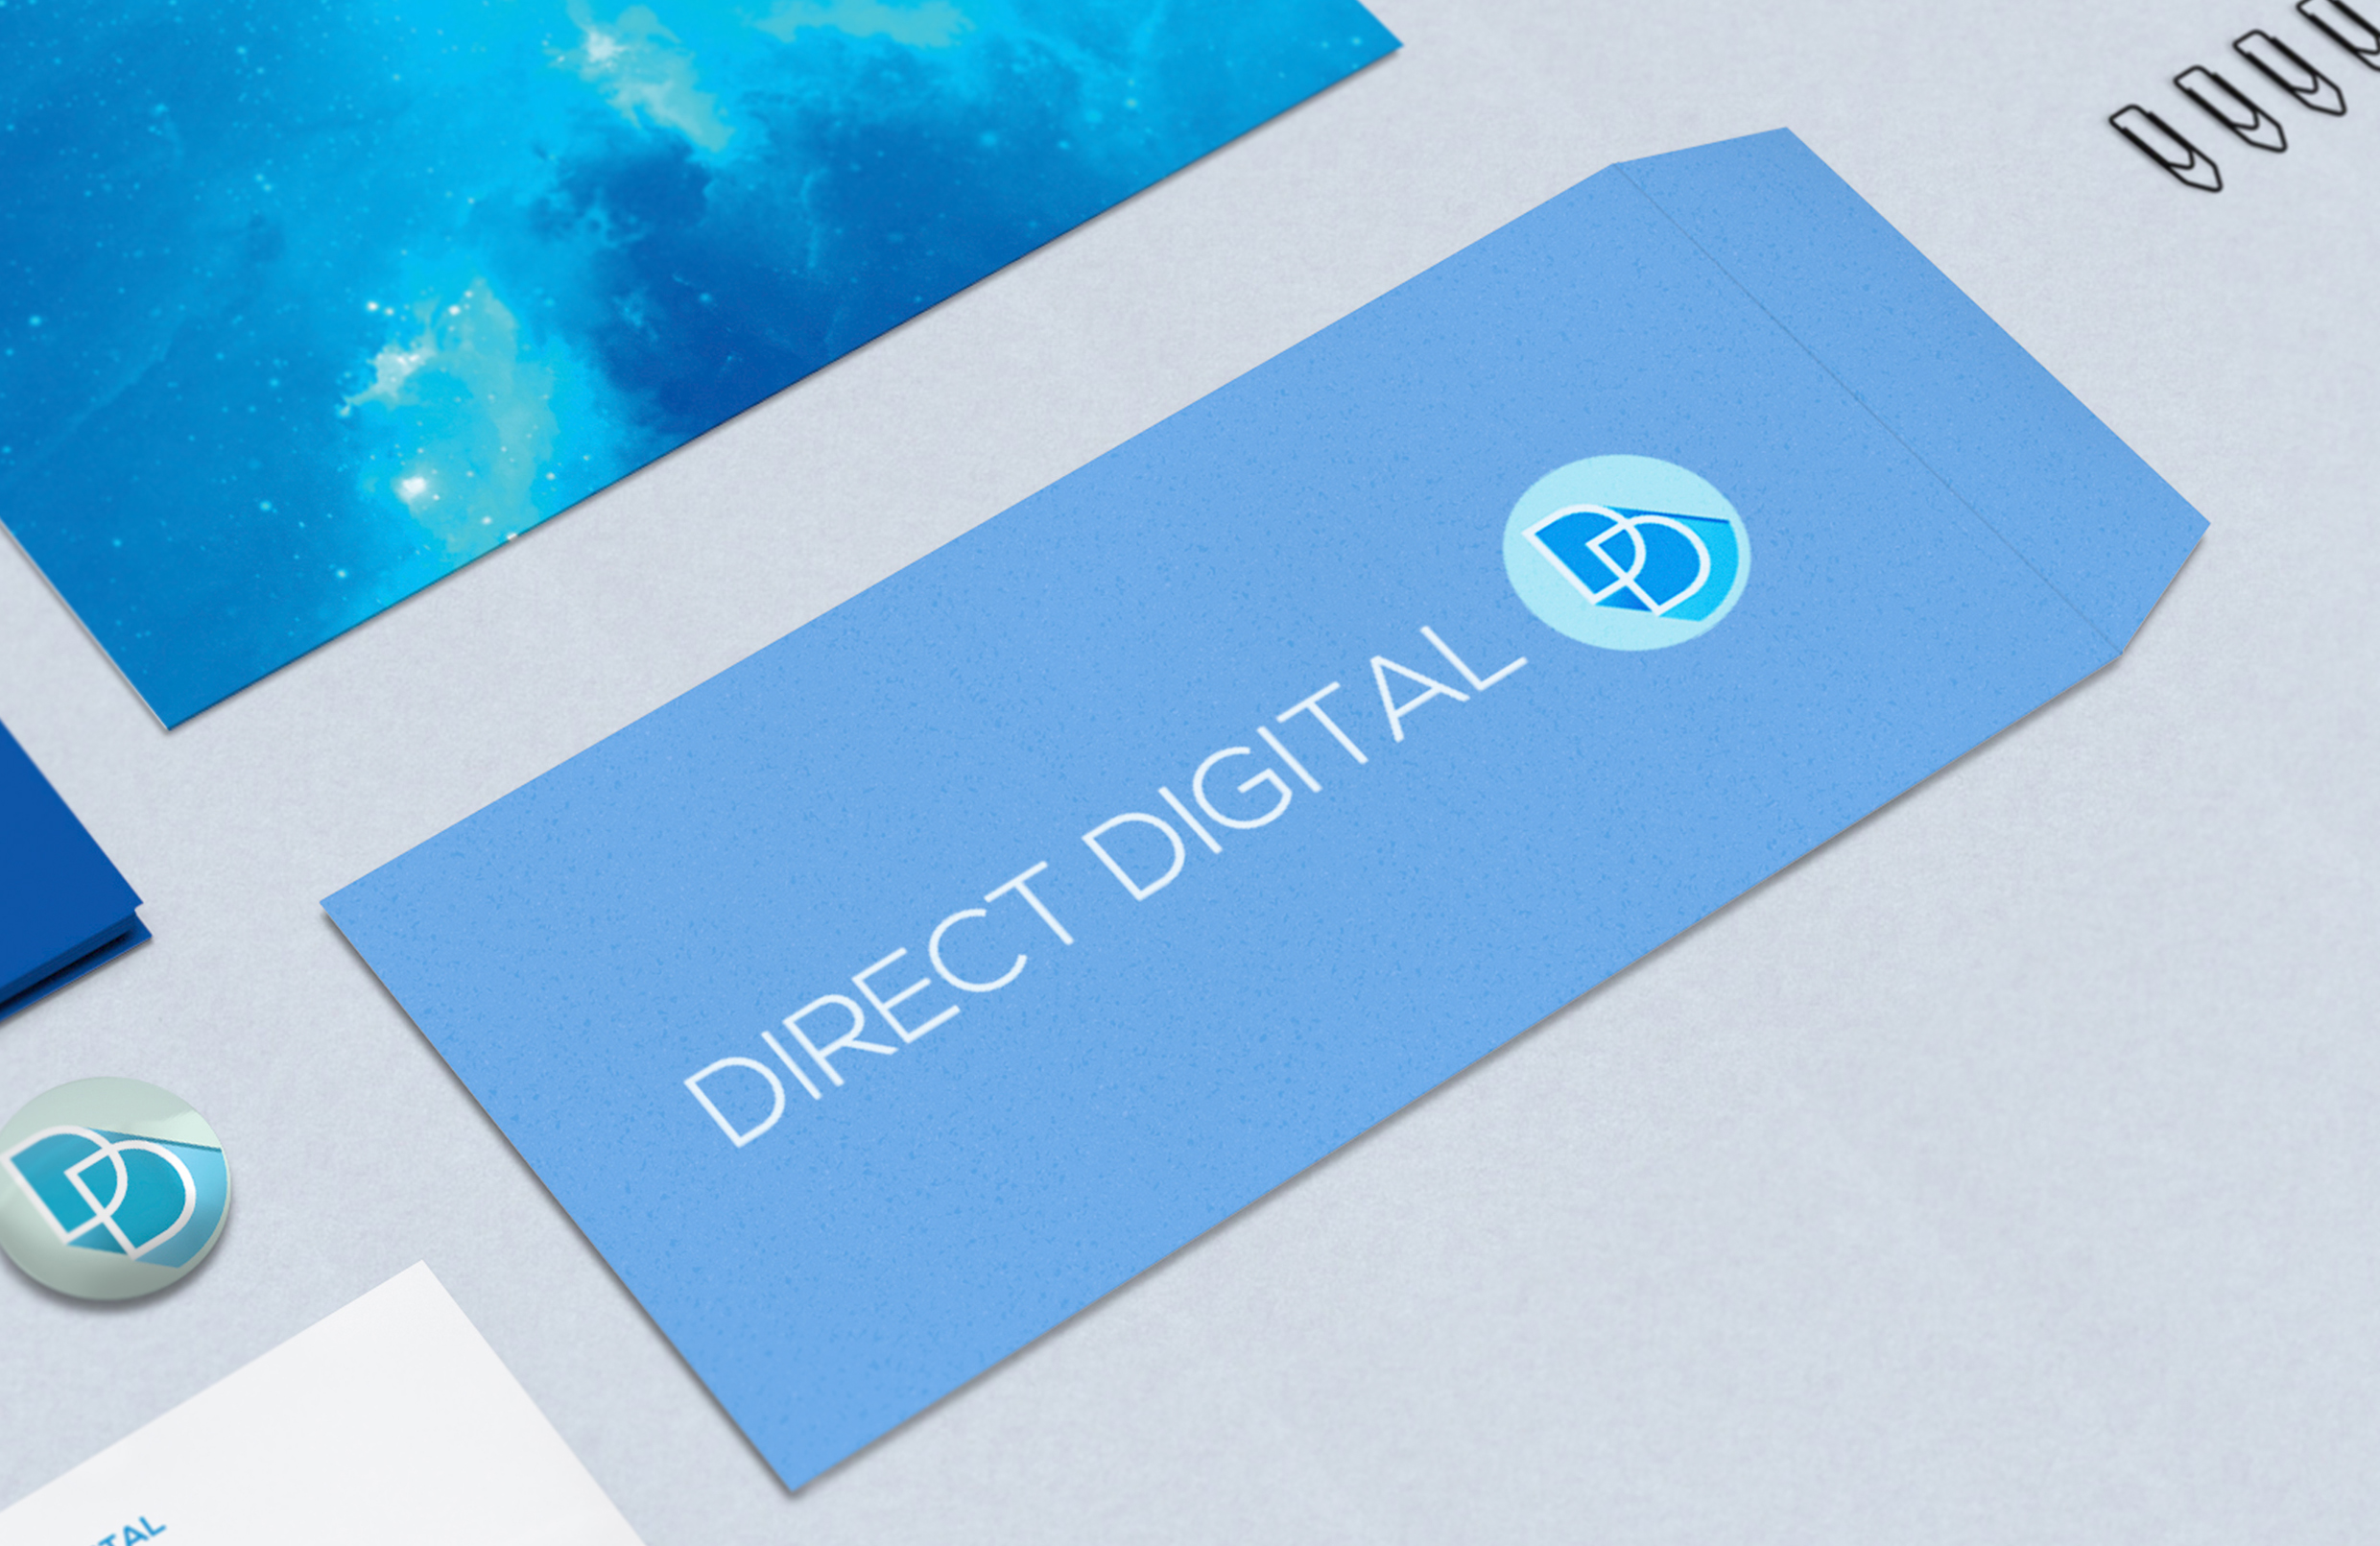 GEMINIWEB - IMAGE - STATIONERY - DIRECT DIGITAL 4